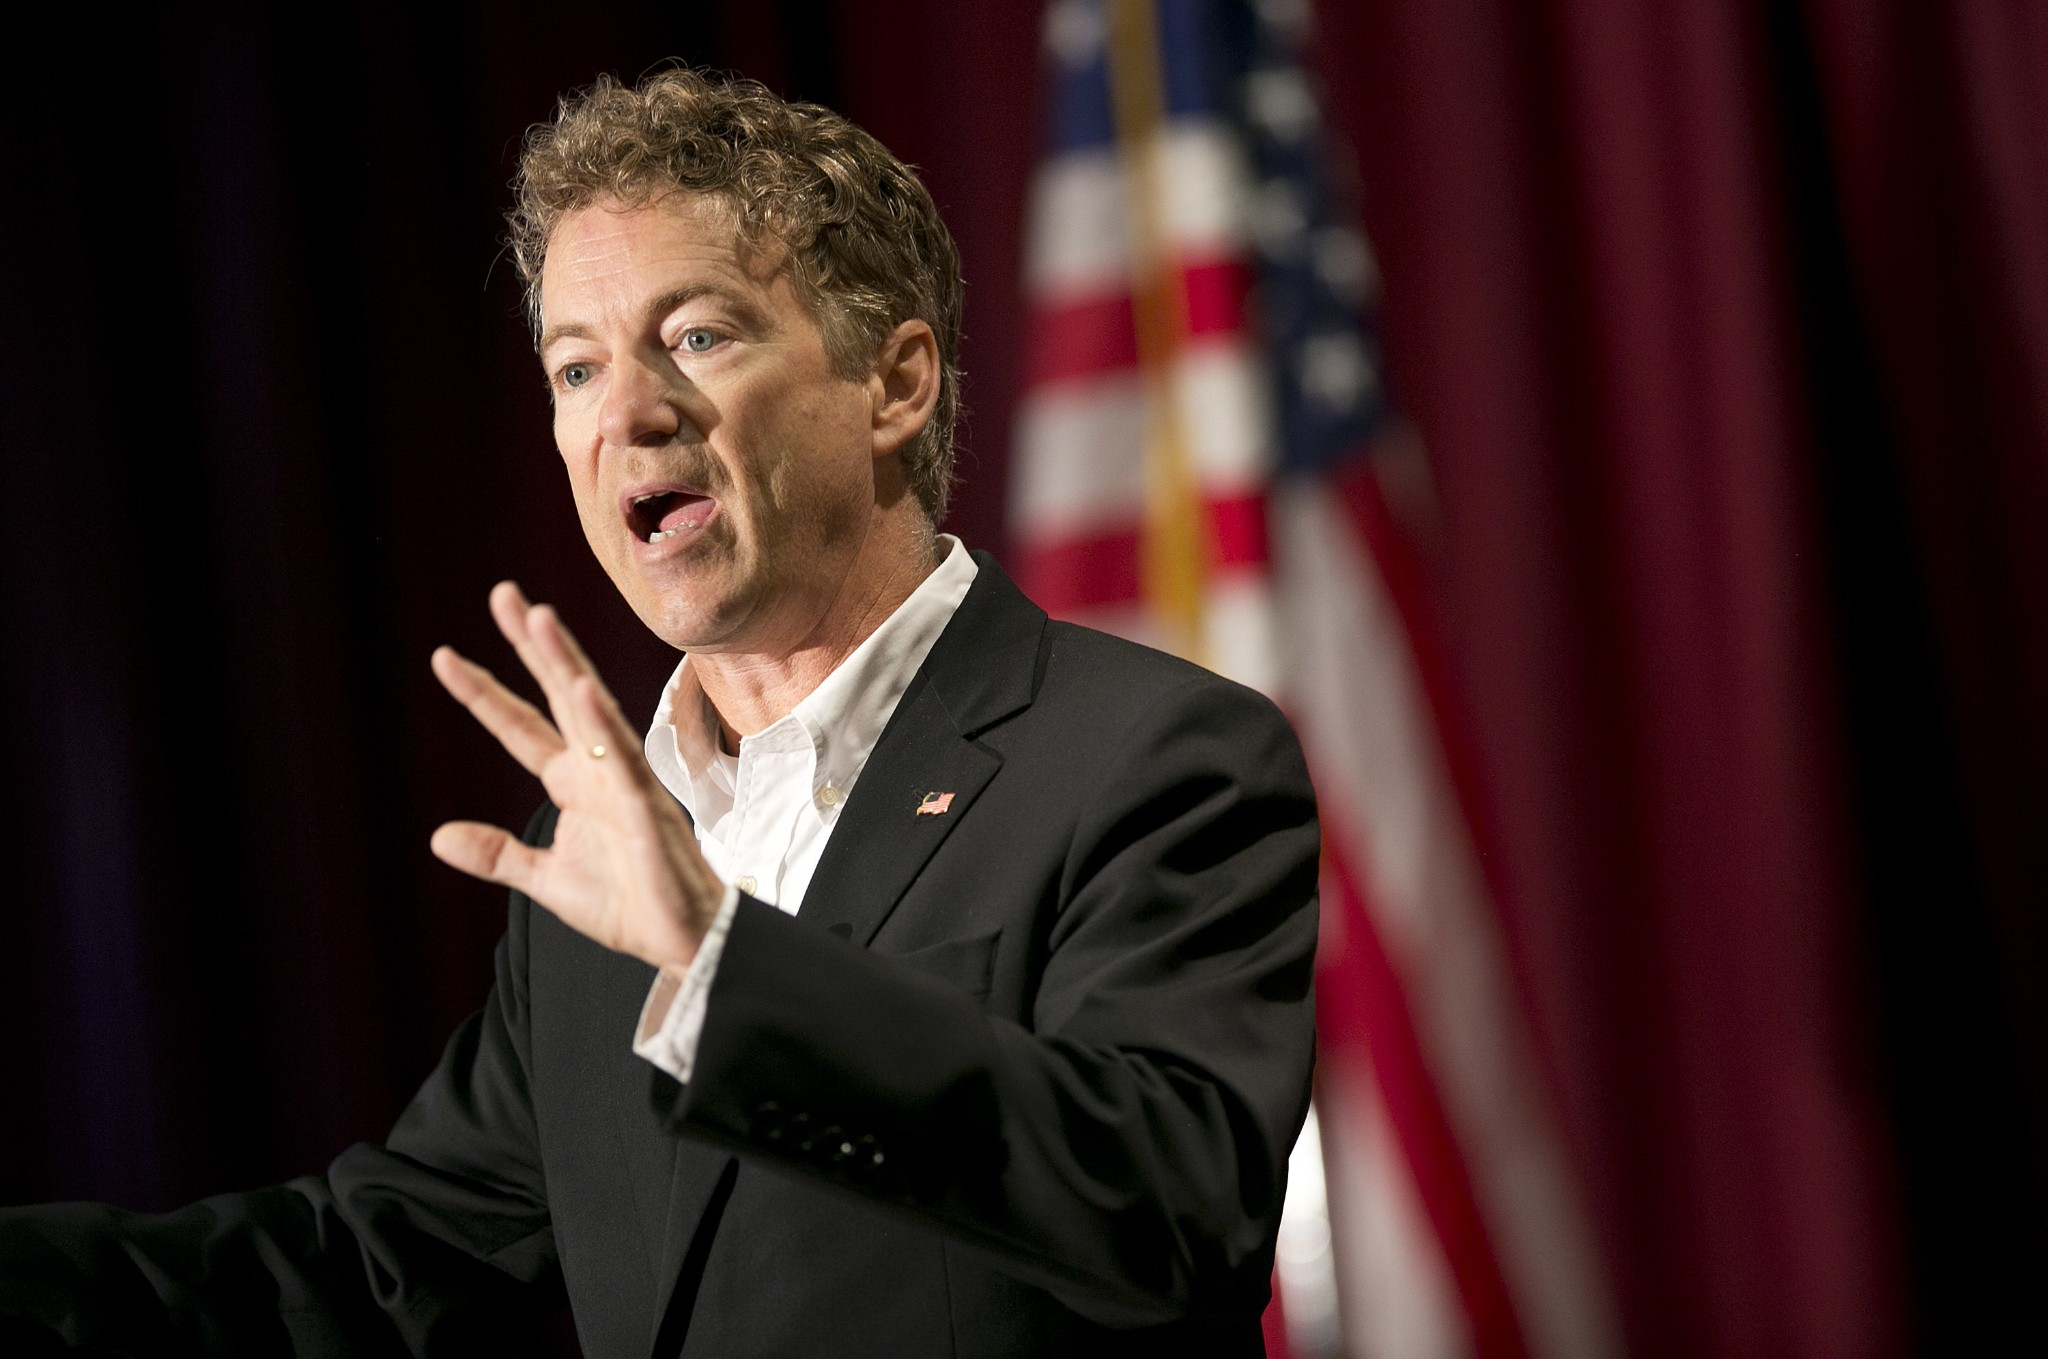 Rand Paul's sneak attack strategy